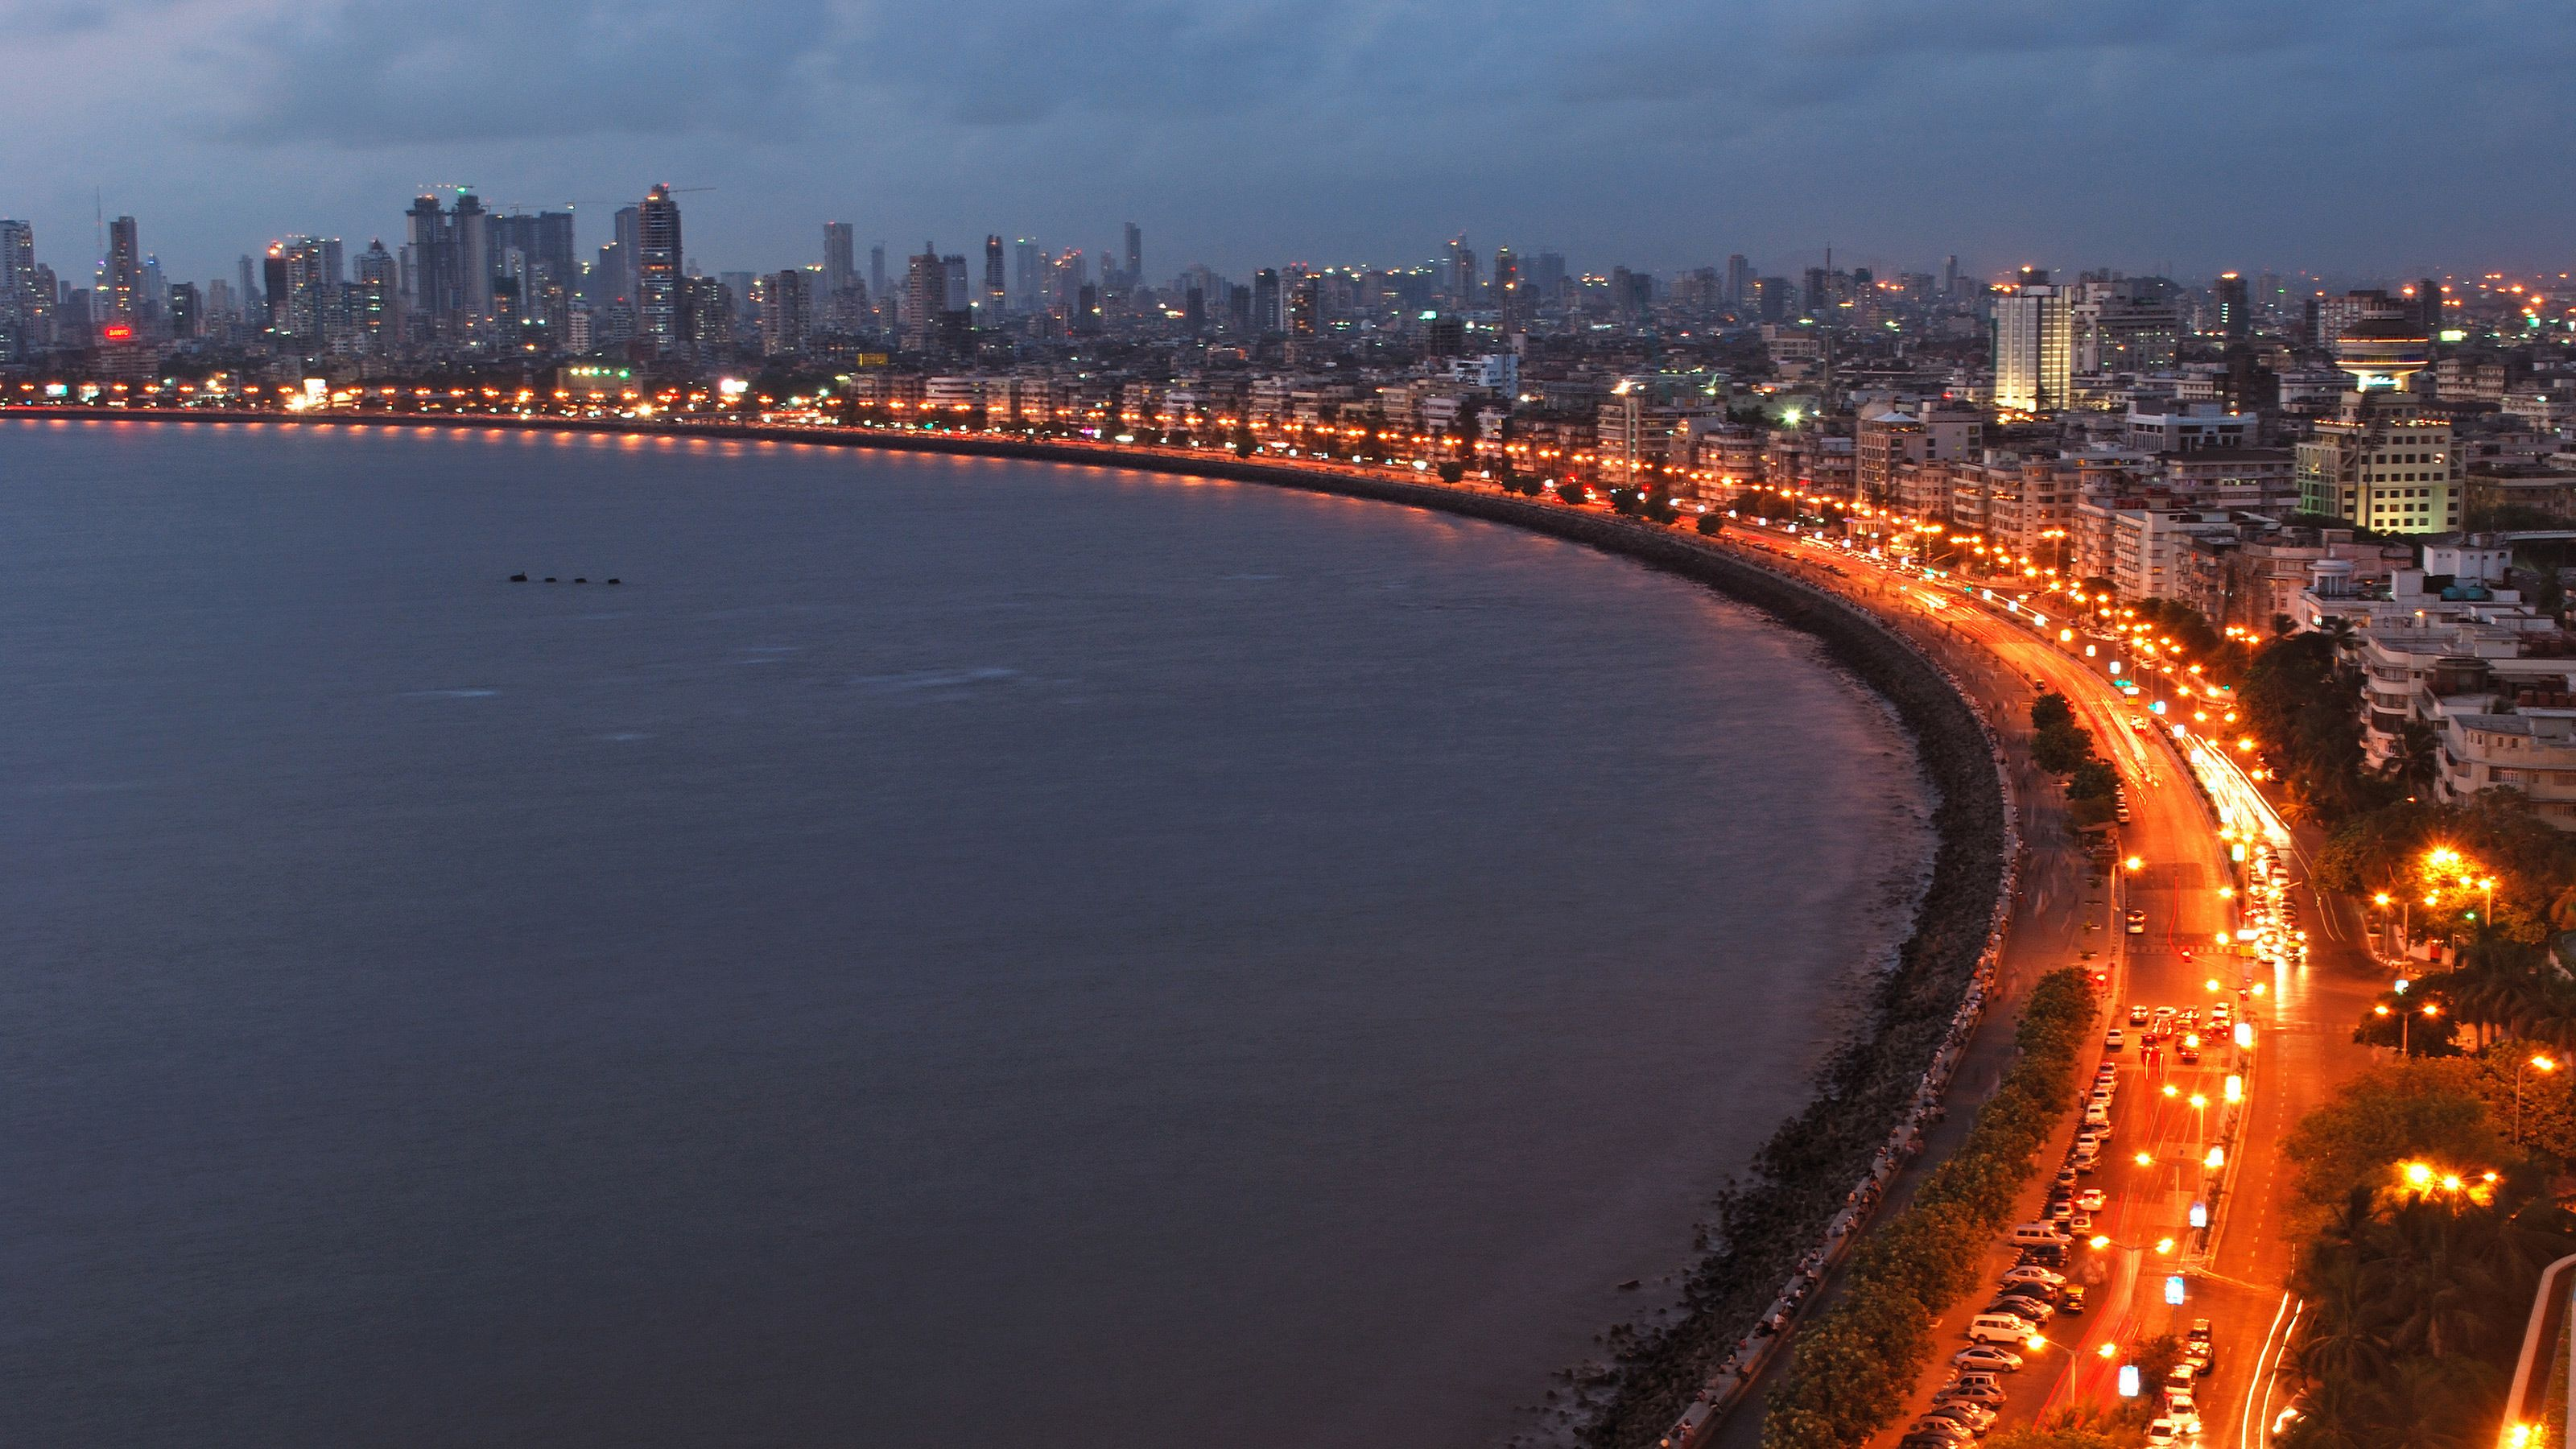 The coast of Mumbai illuminated at night